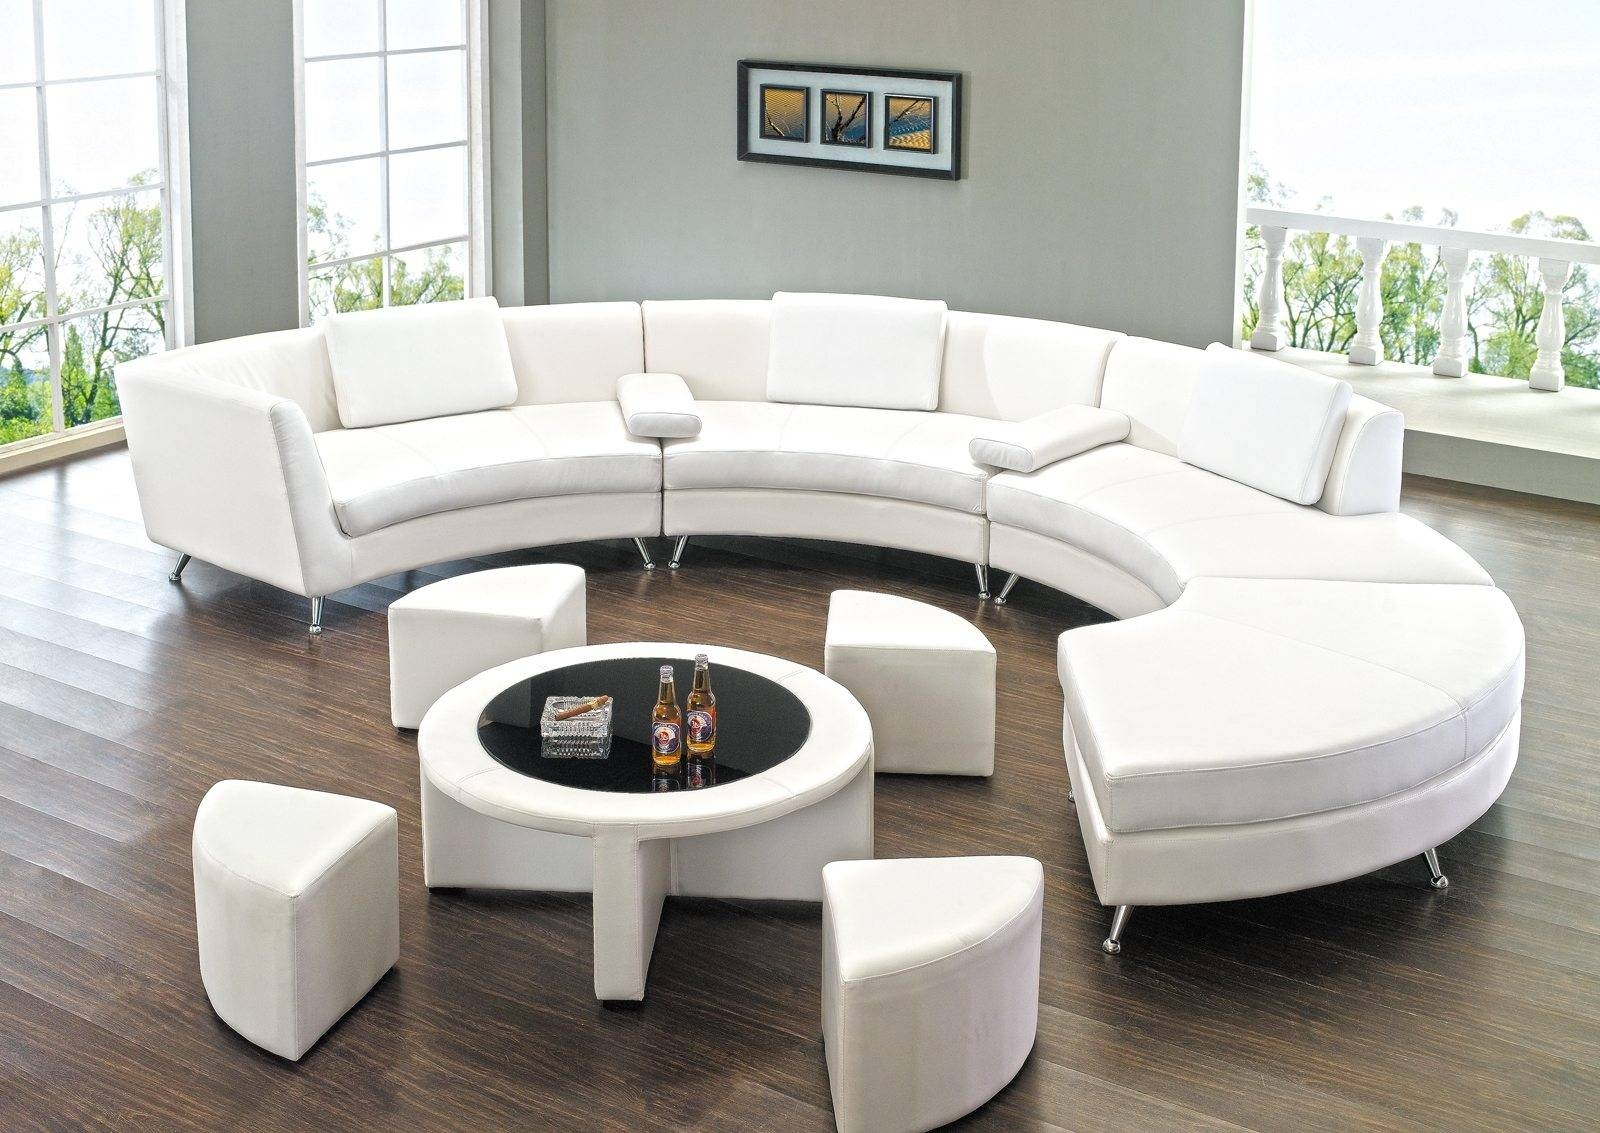 Remarkable Round Sofa With Living Room Curved Couches Round Sofa pertaining to Round Sofas (Image 13 of 30)